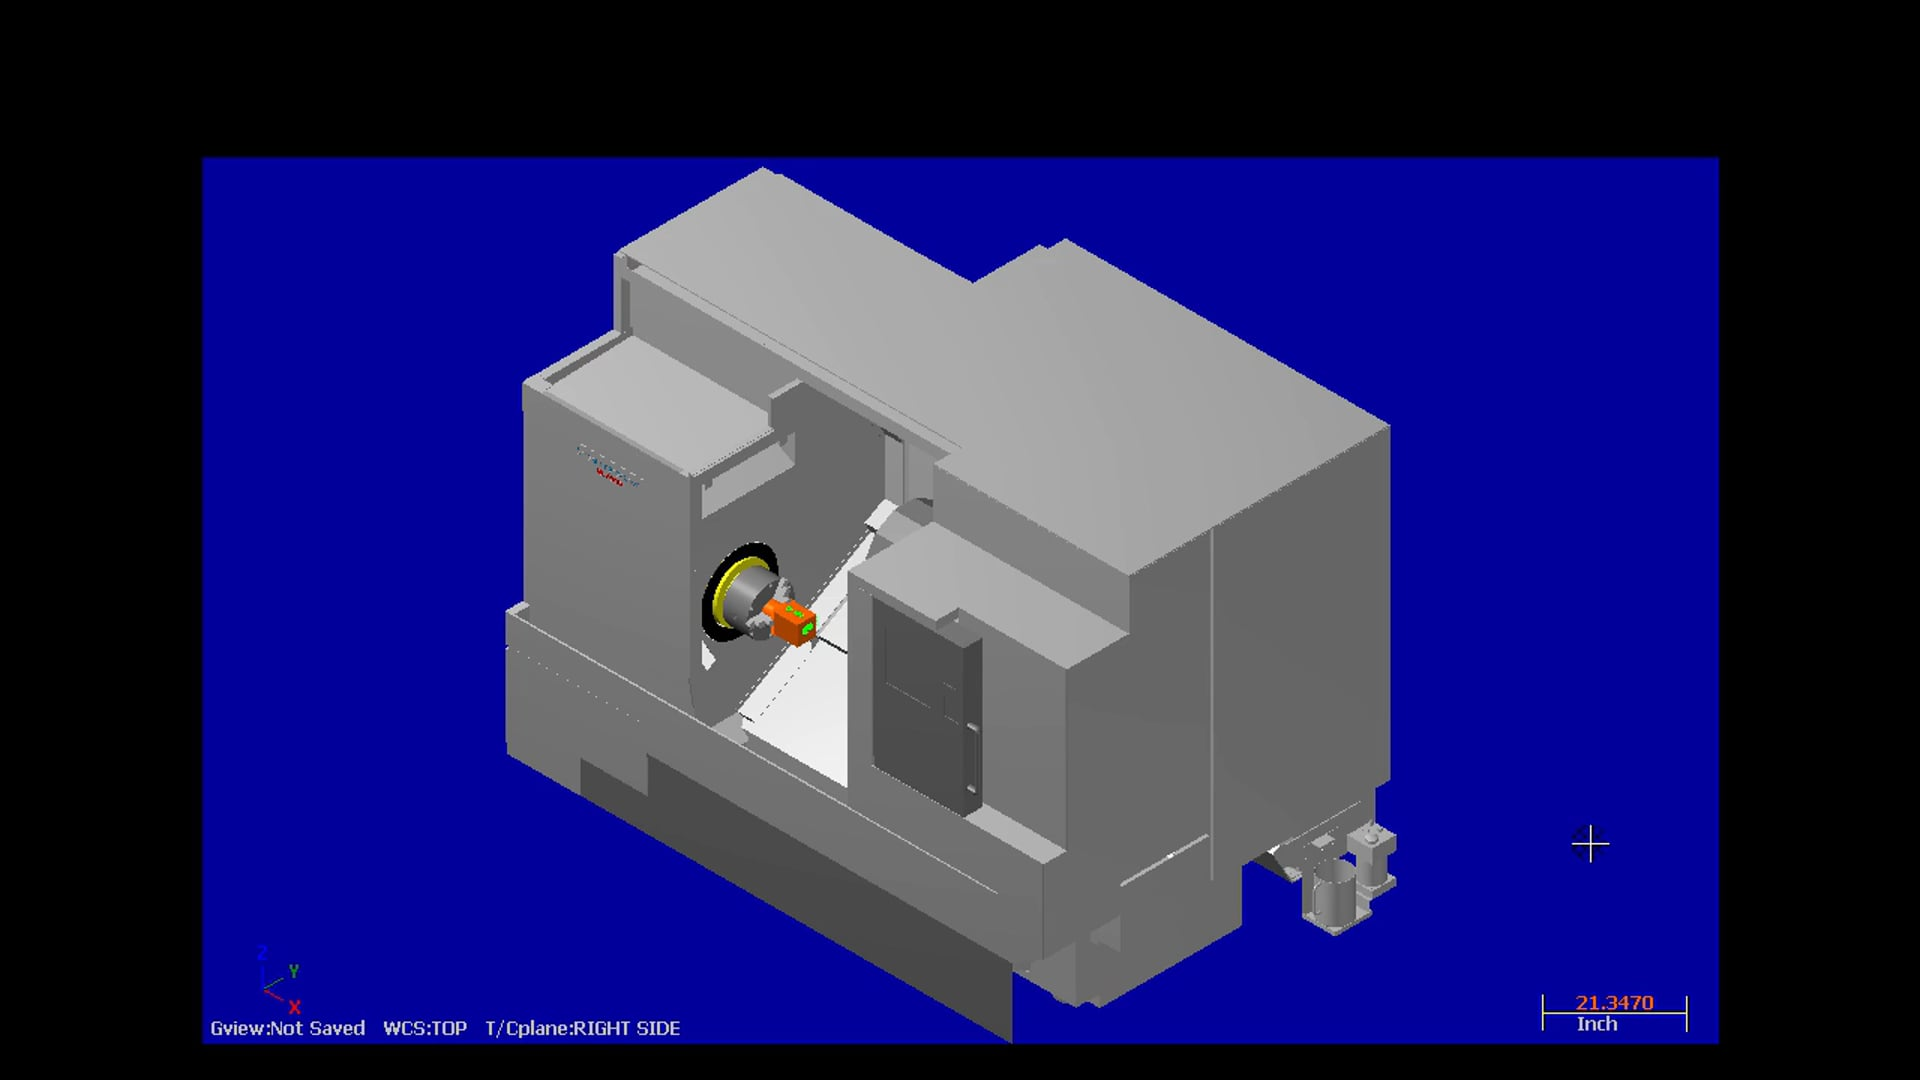 Lathe and Mill Environment